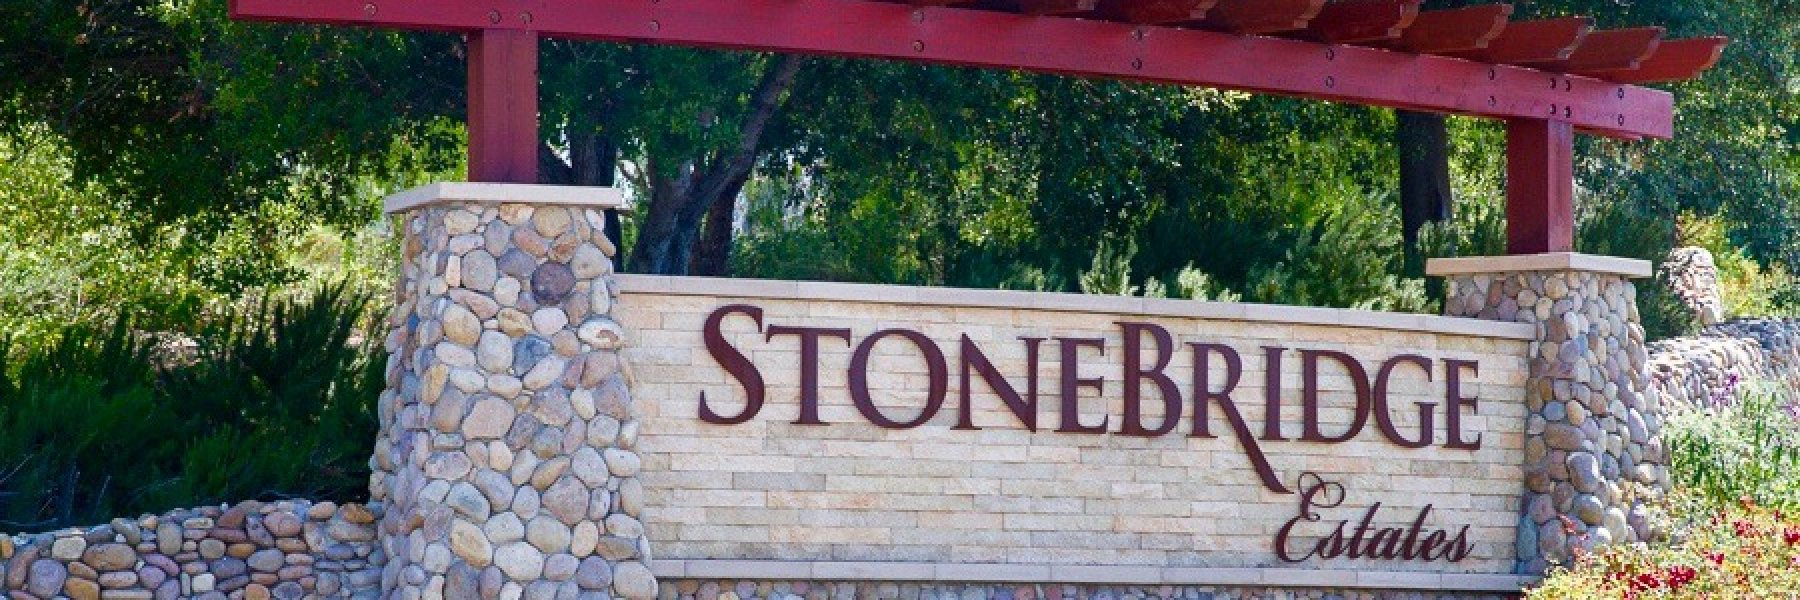 Stonebridge Estates is a community of homes in San Diego California